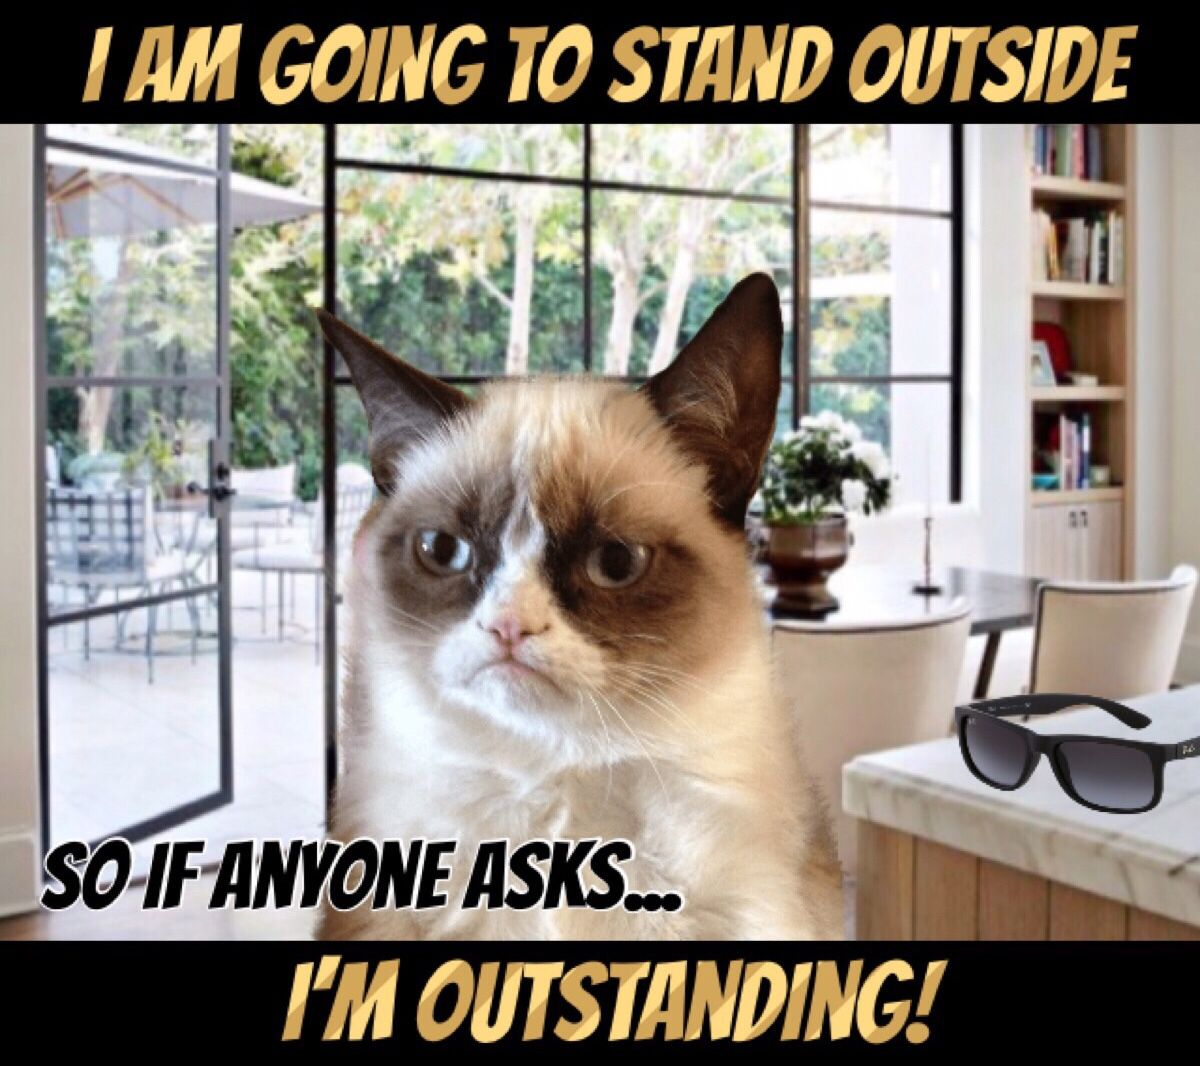 I'm Going To Stand Outside So If Anyone Asks... I'm